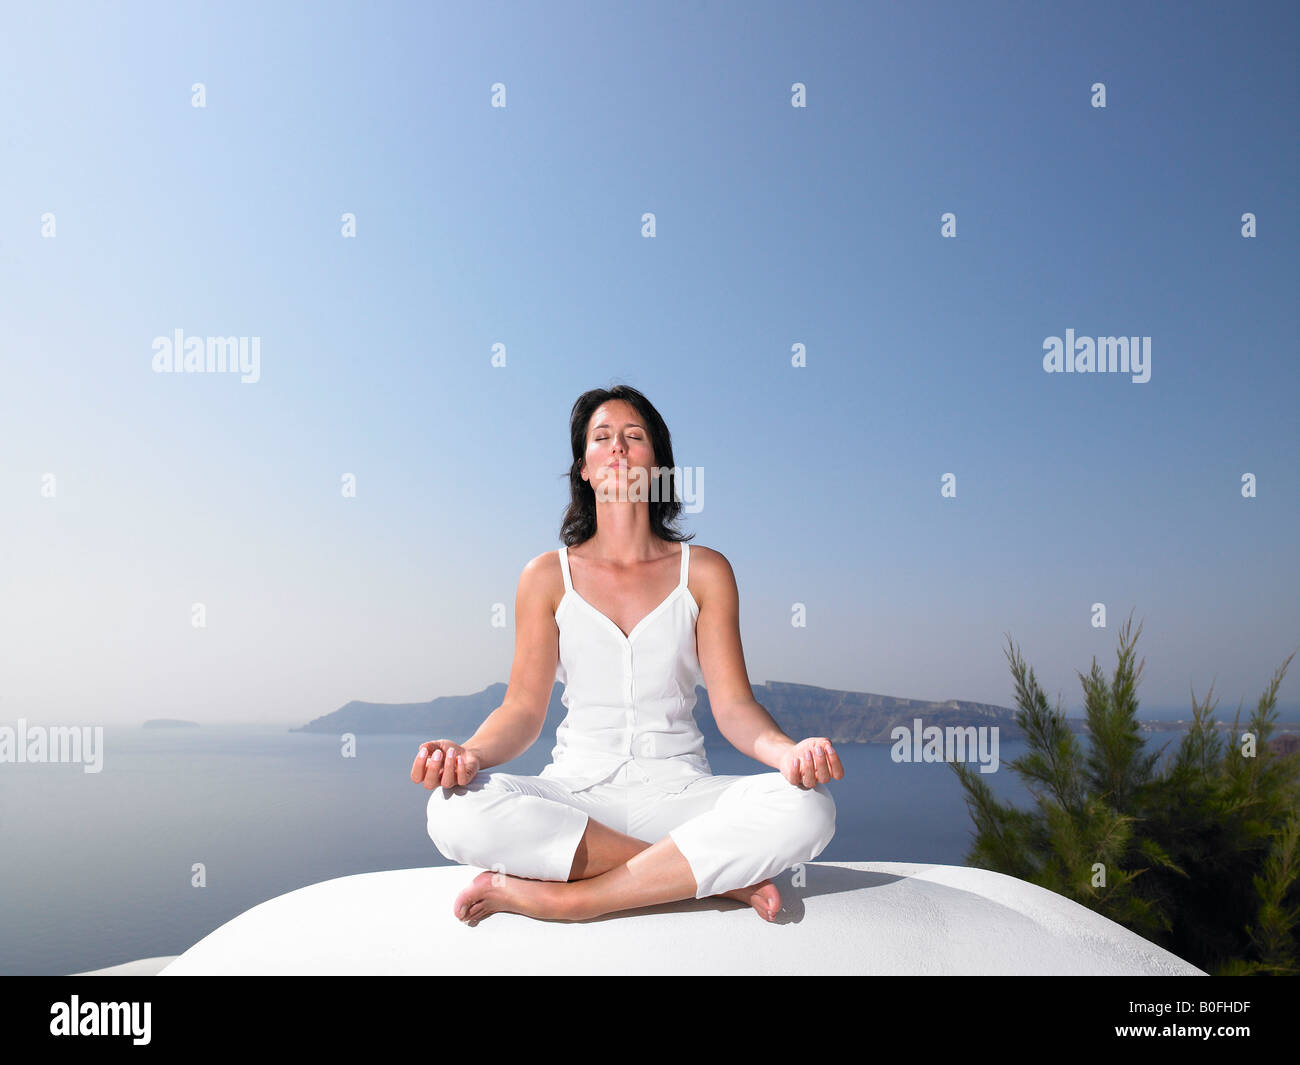 Woman in a yoga session - Stock Image